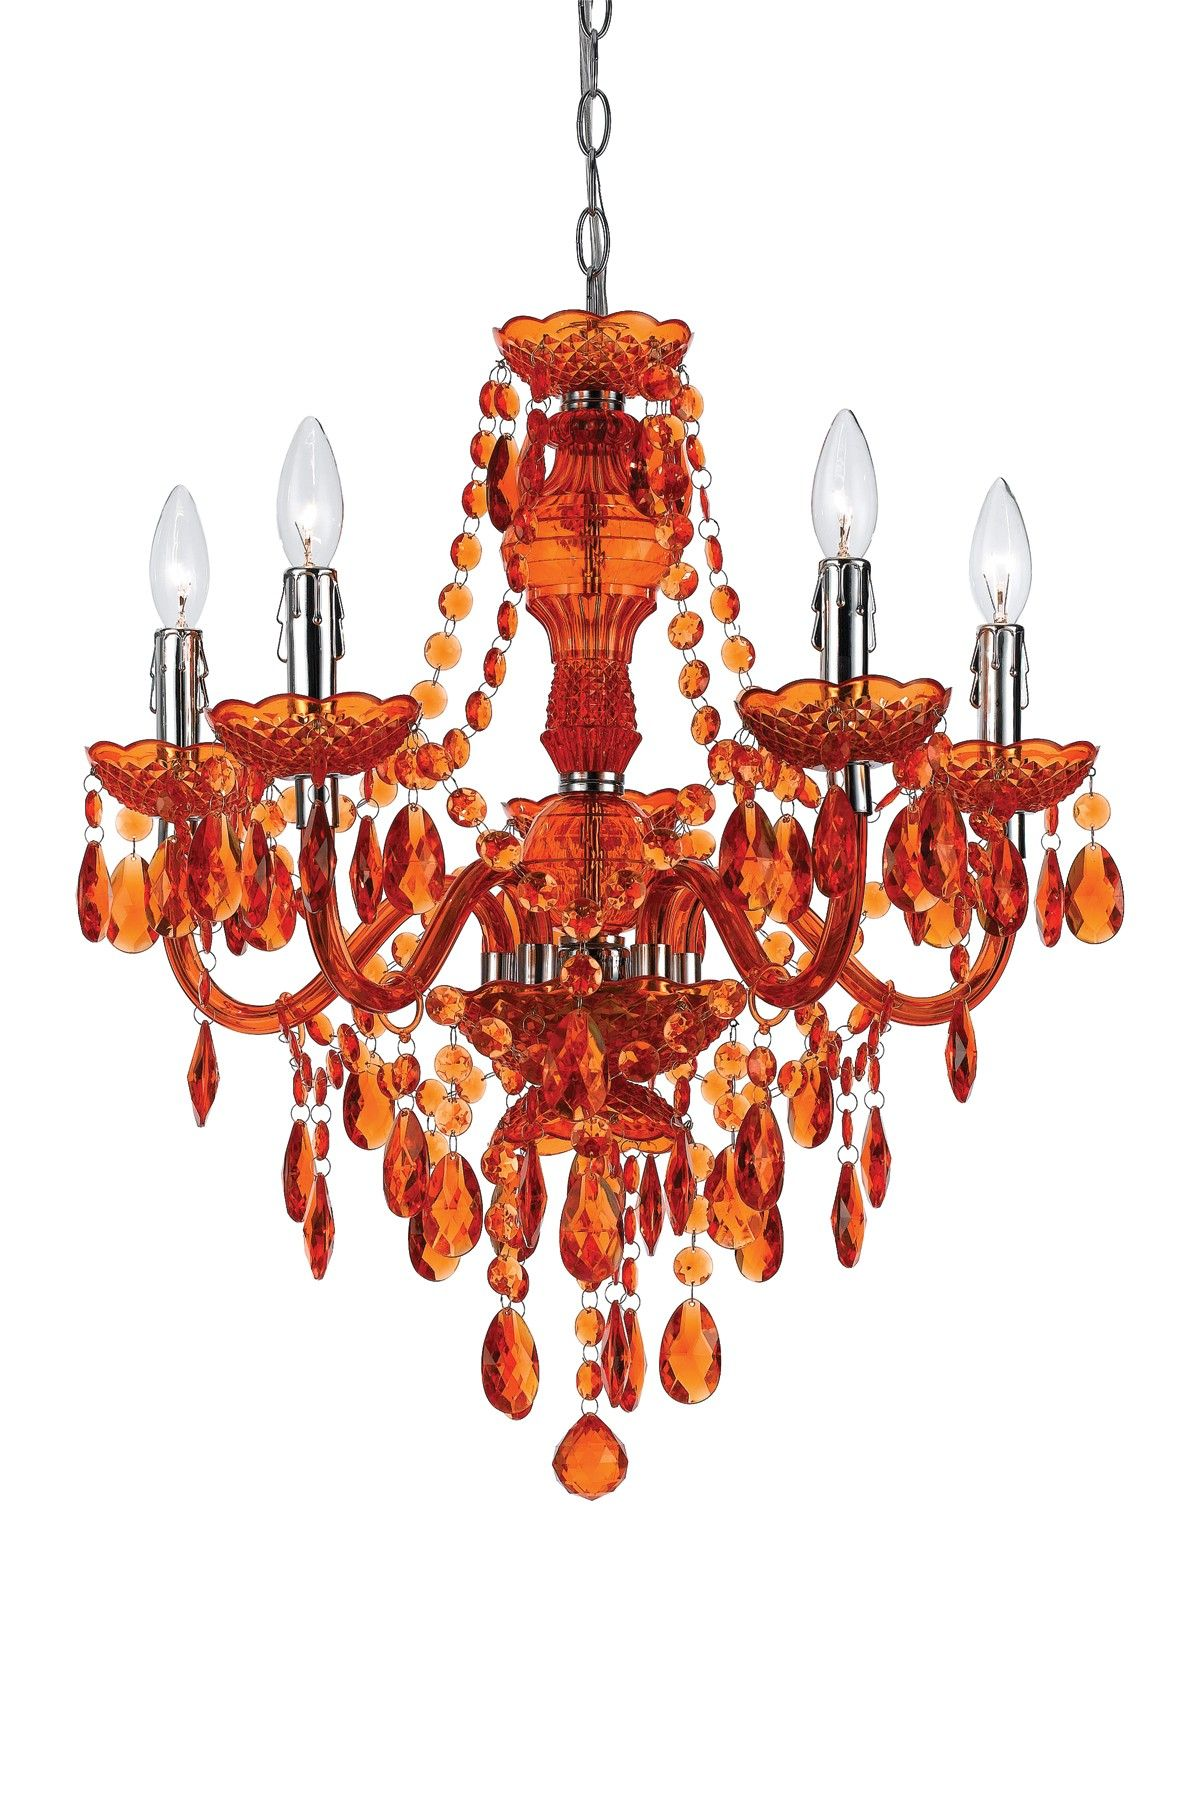 AngeloHOME Fulton Light Chandelier For The Wall Pinterest - Orange chandelier crystals